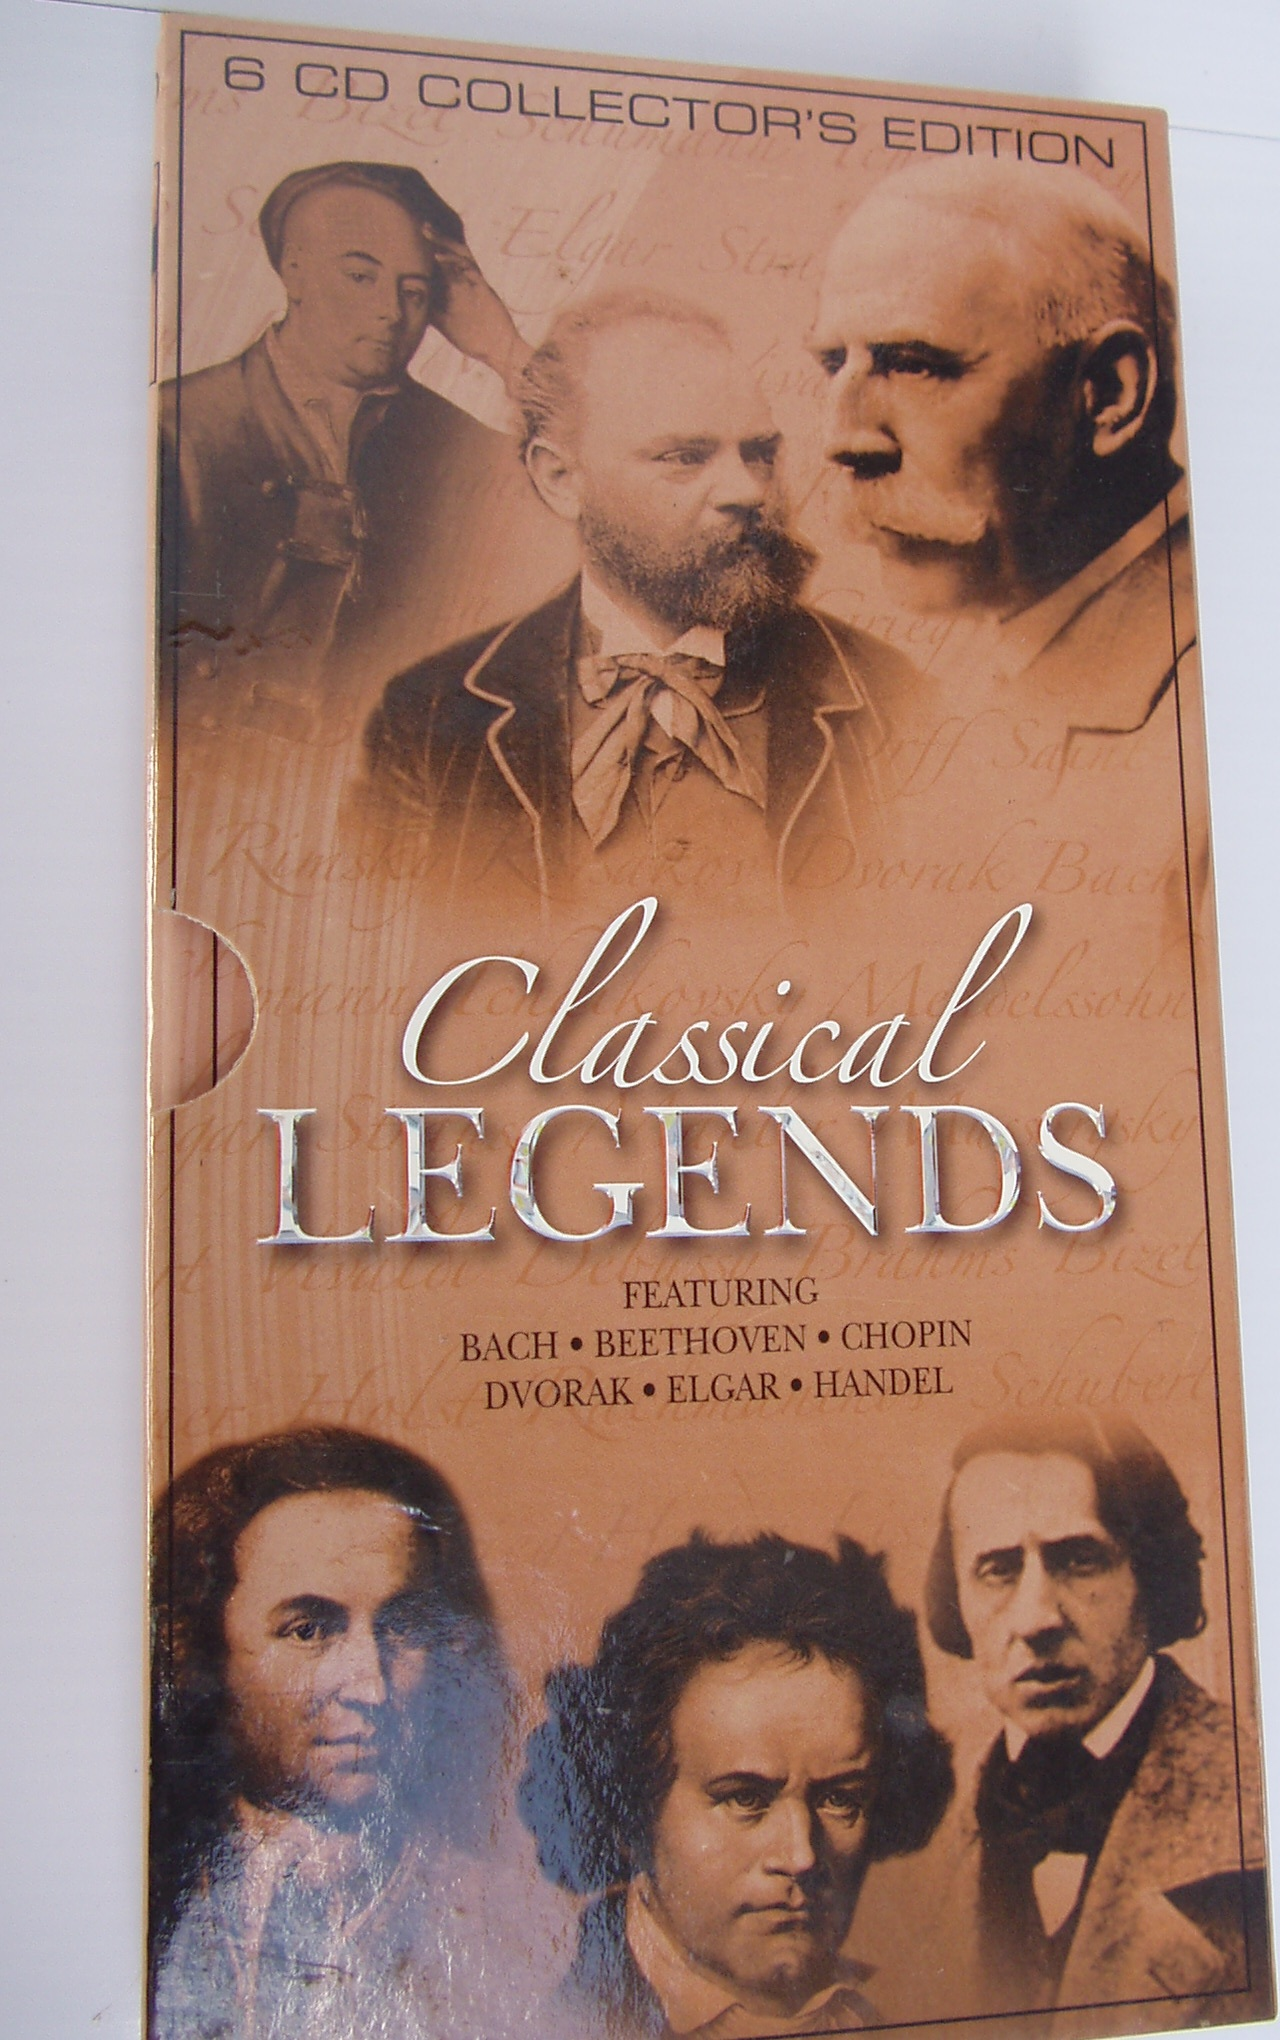 Classical Legends - 6CD Collectors Edition  - As new